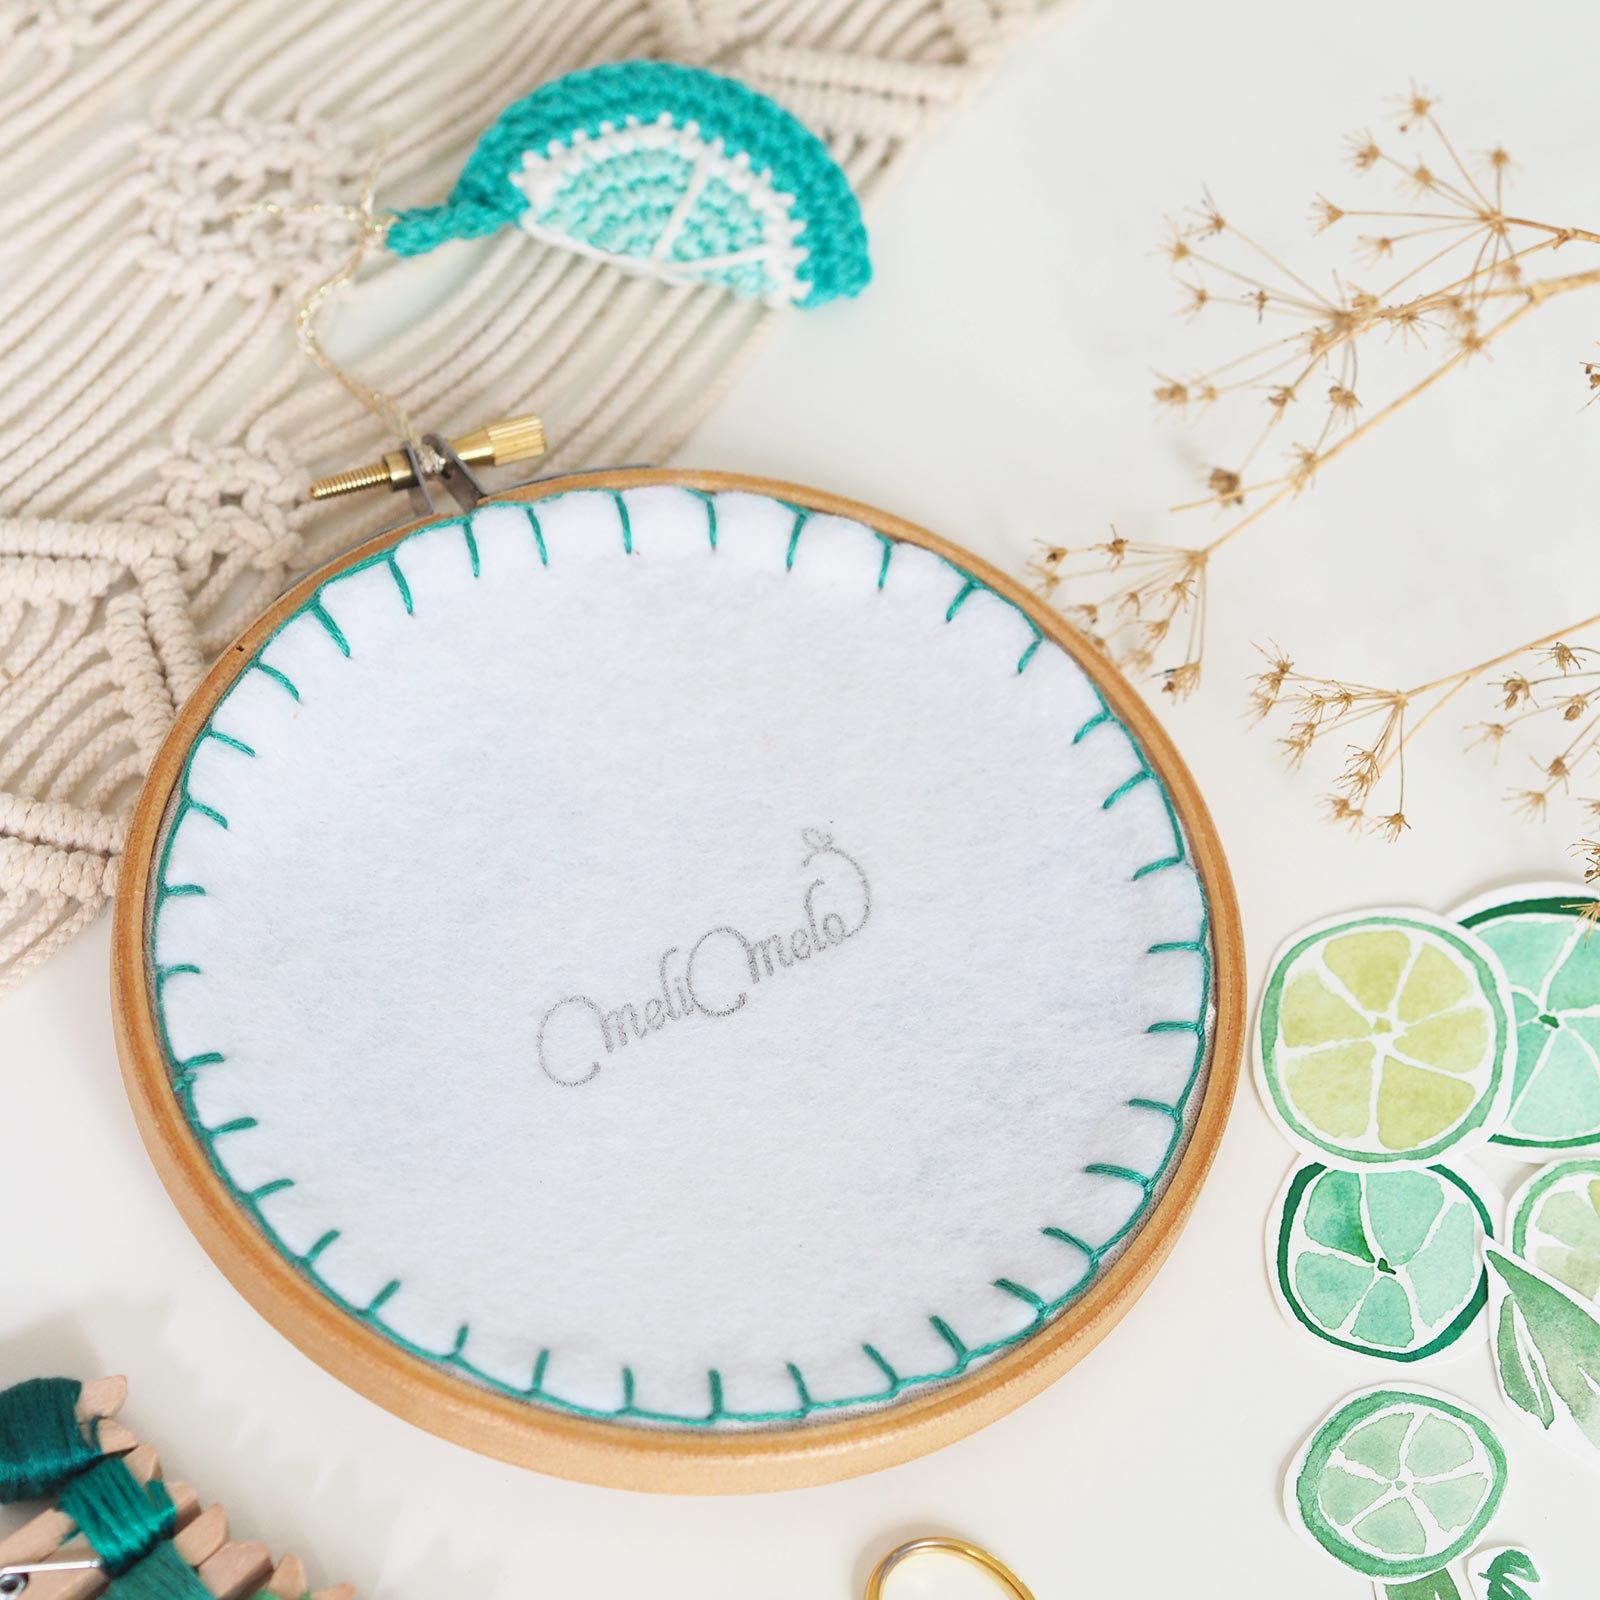 finitions-mojito-broderie-embroidery-crochet-watercolor-lime-vert-laboutiquedemelimelo